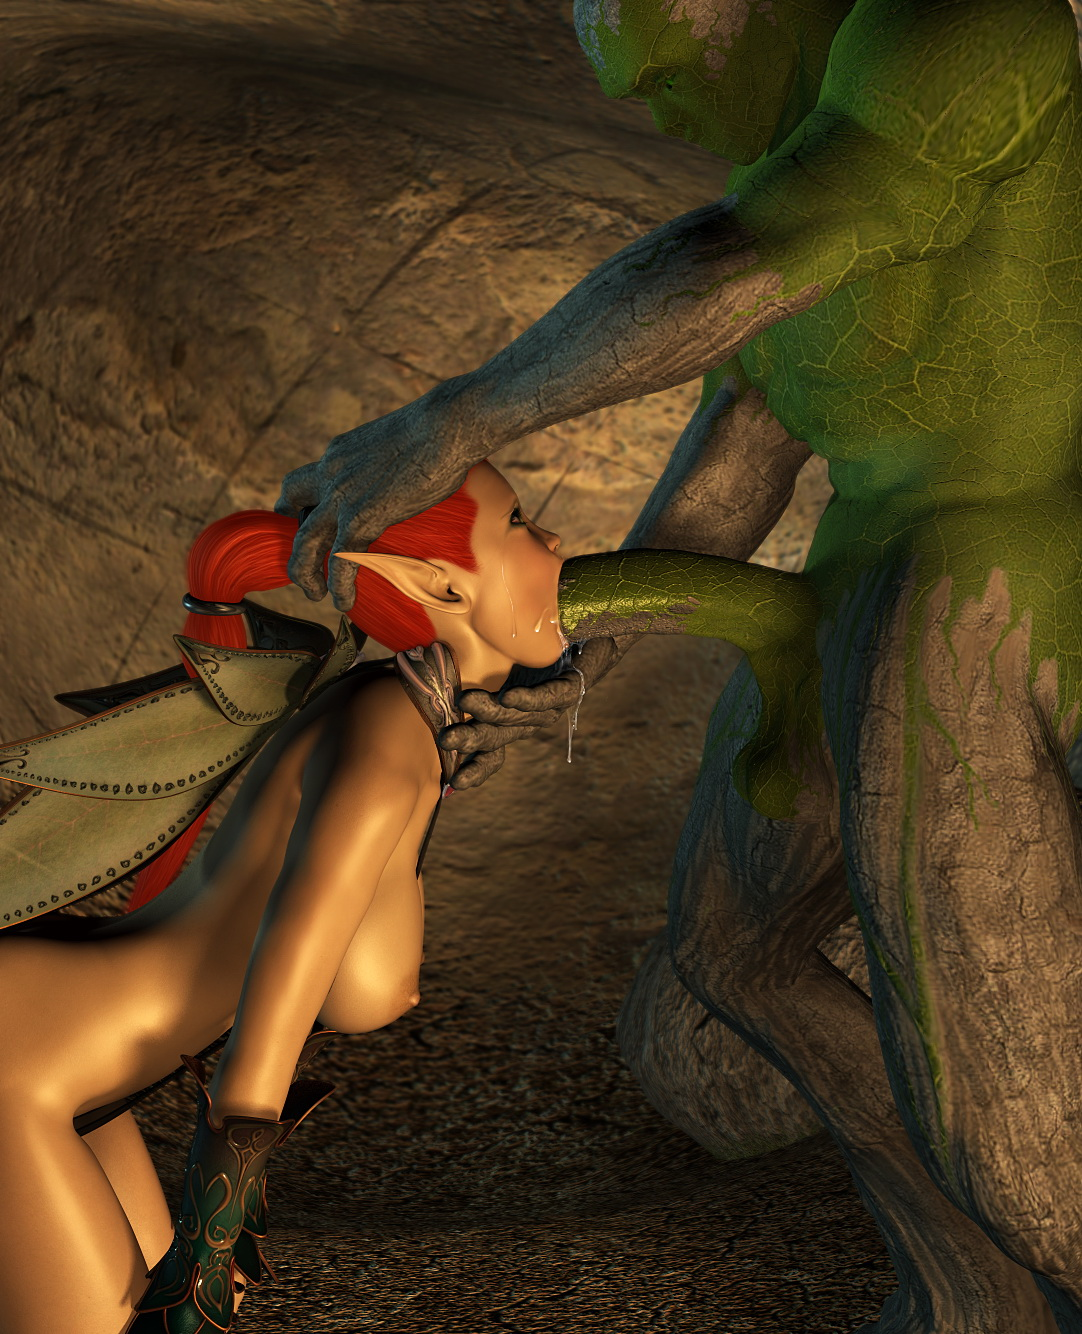 Female elf sucking cock erotic photo